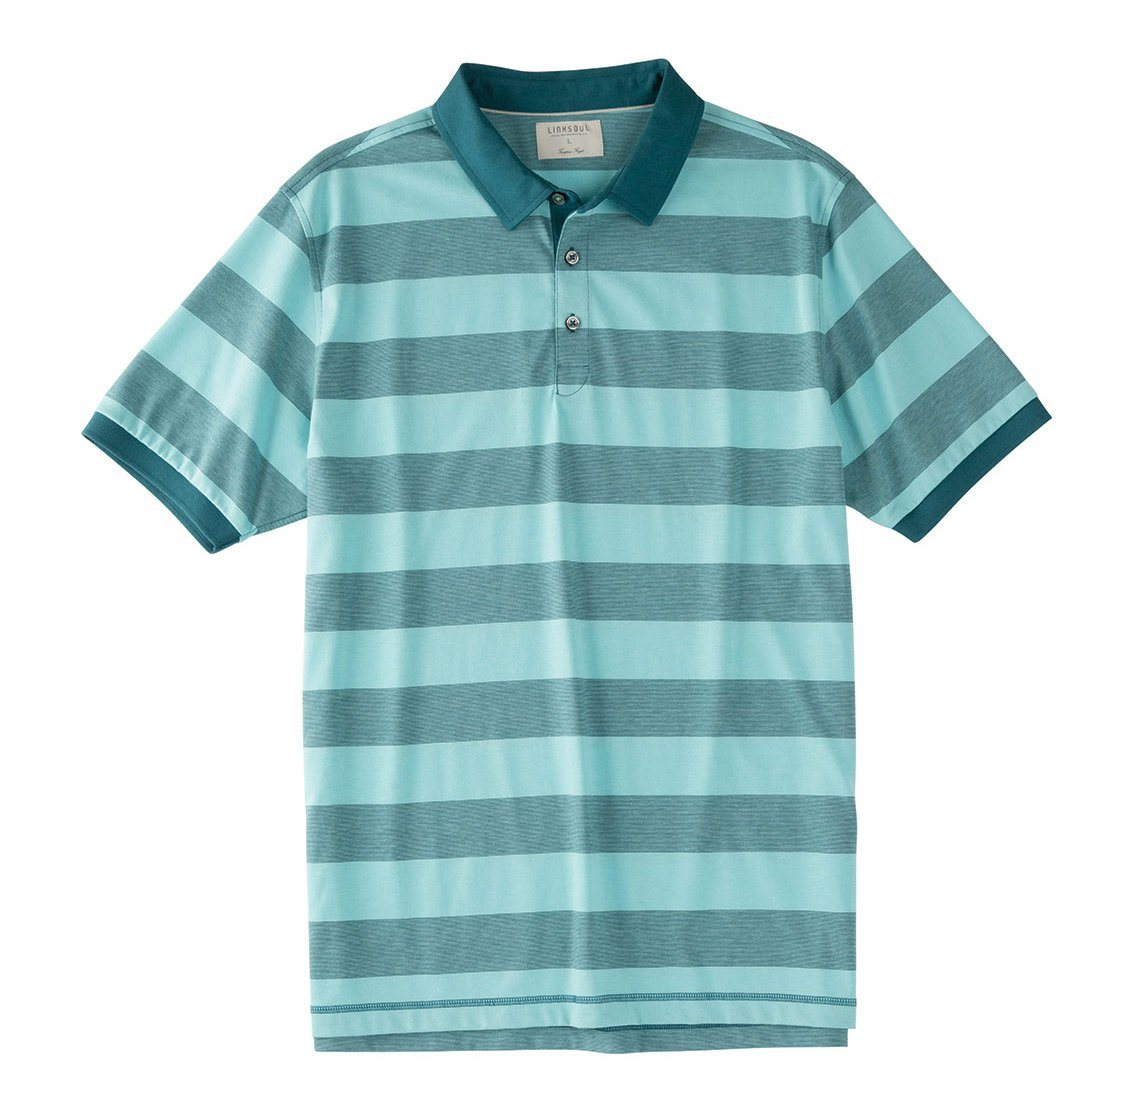 End-on-End Stripe Knit Polo